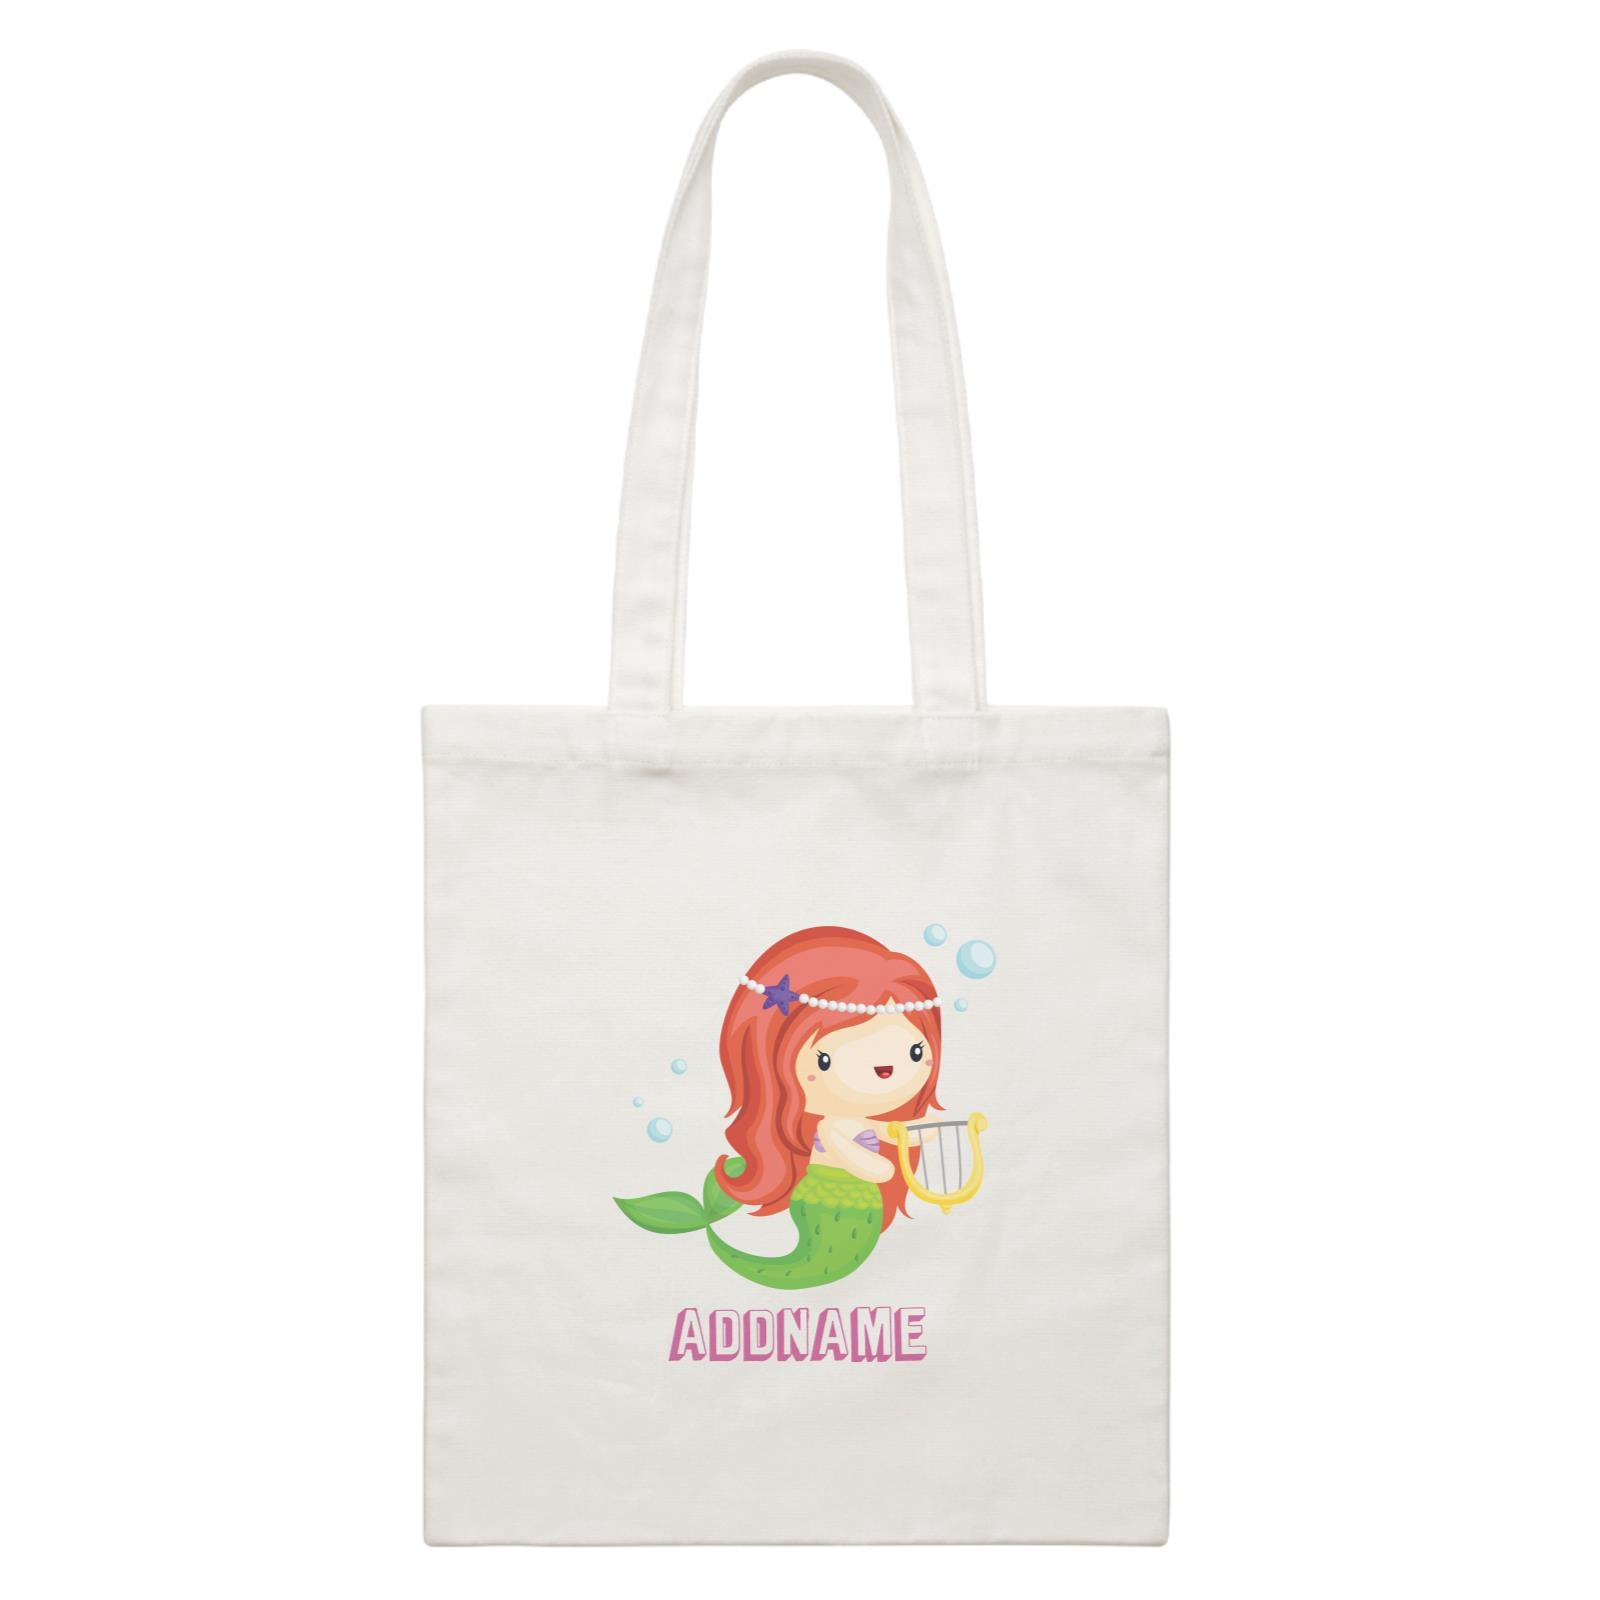 Birthday Mermaid Red Long Hair Mermaid Playing Harp Addname White Canvas Bag